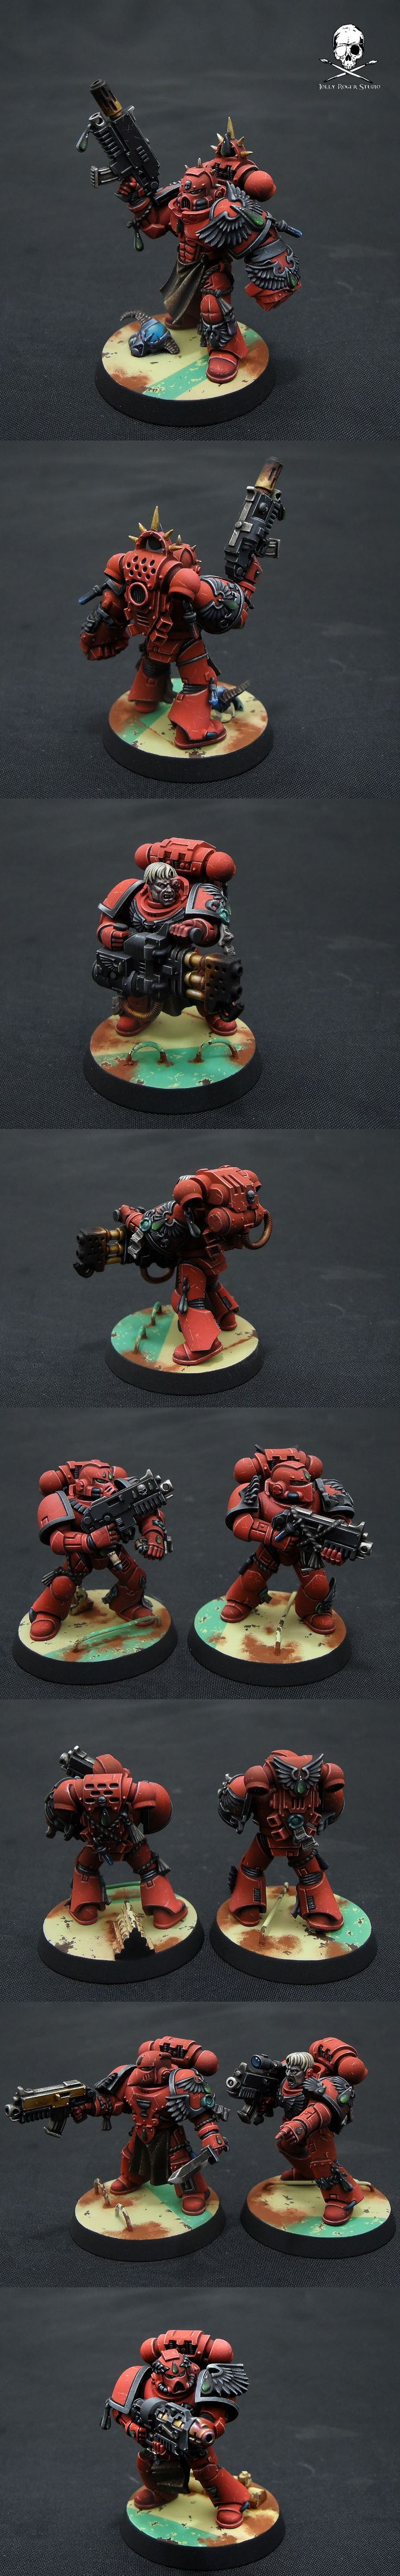 Hello New Space Marine squad. Larger bases are awesome, but I can imagine inconvenience on